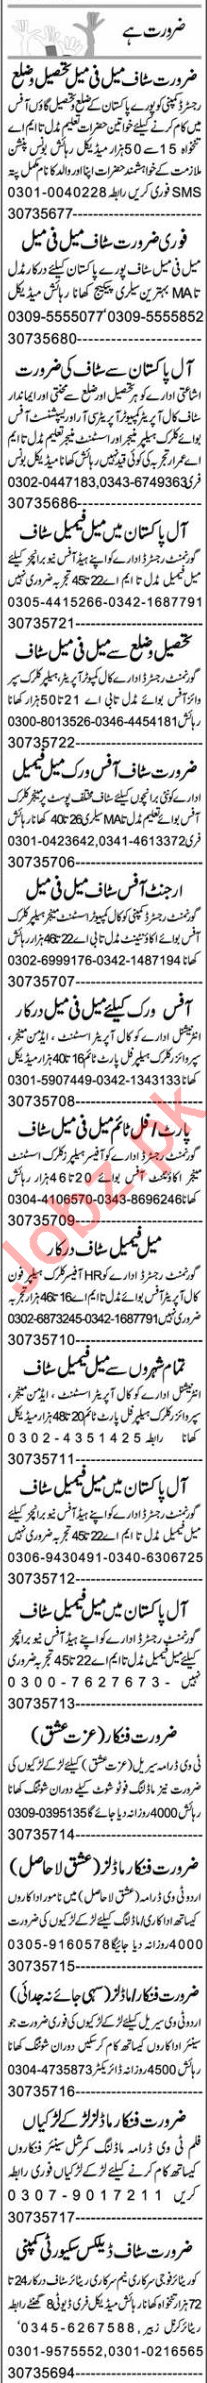 Office Assistant & HR Officer Jobs 2020 in Lahore